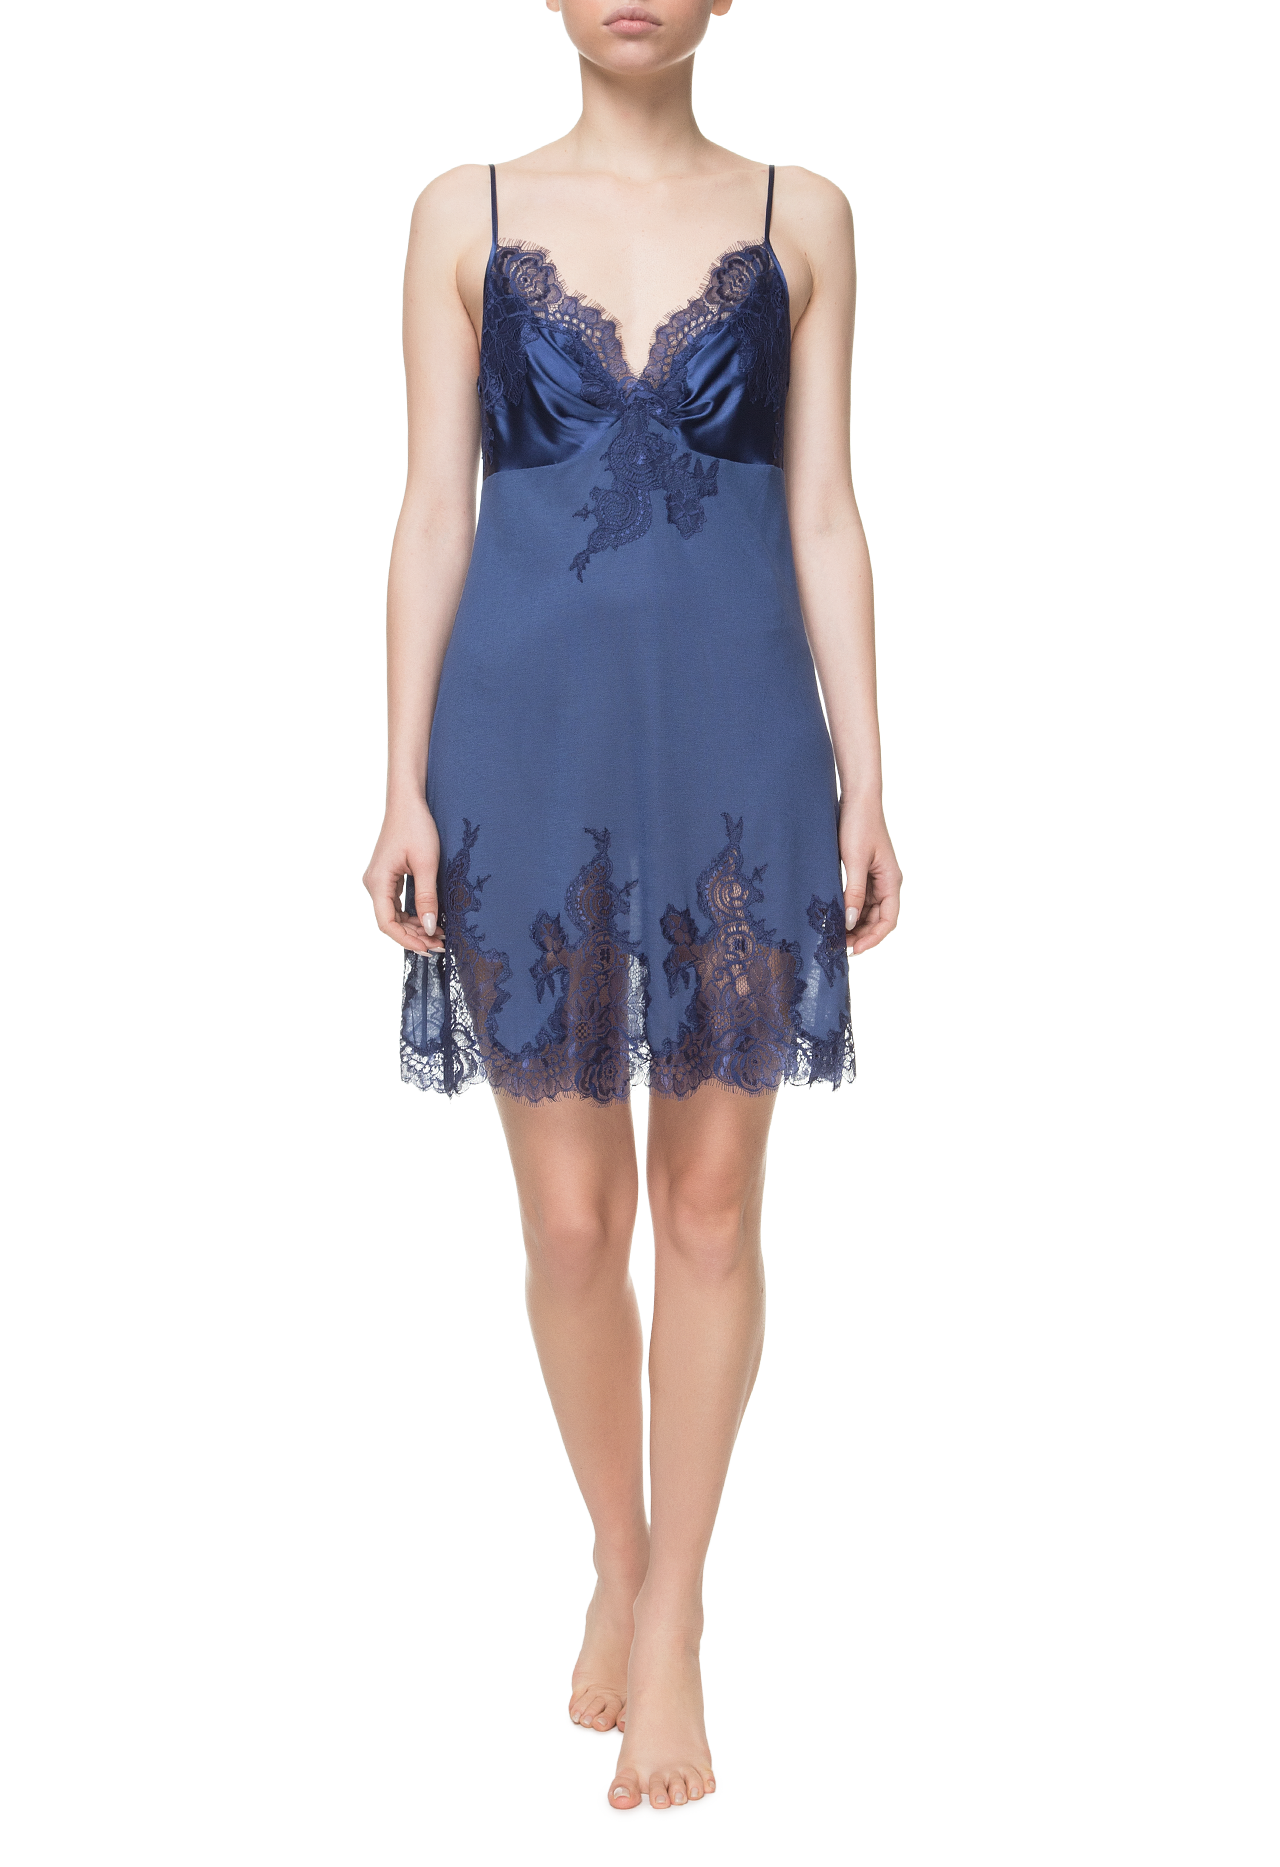 Ночная сорочка Suavite lace-night-dress-slp73-19-blu-noella-w